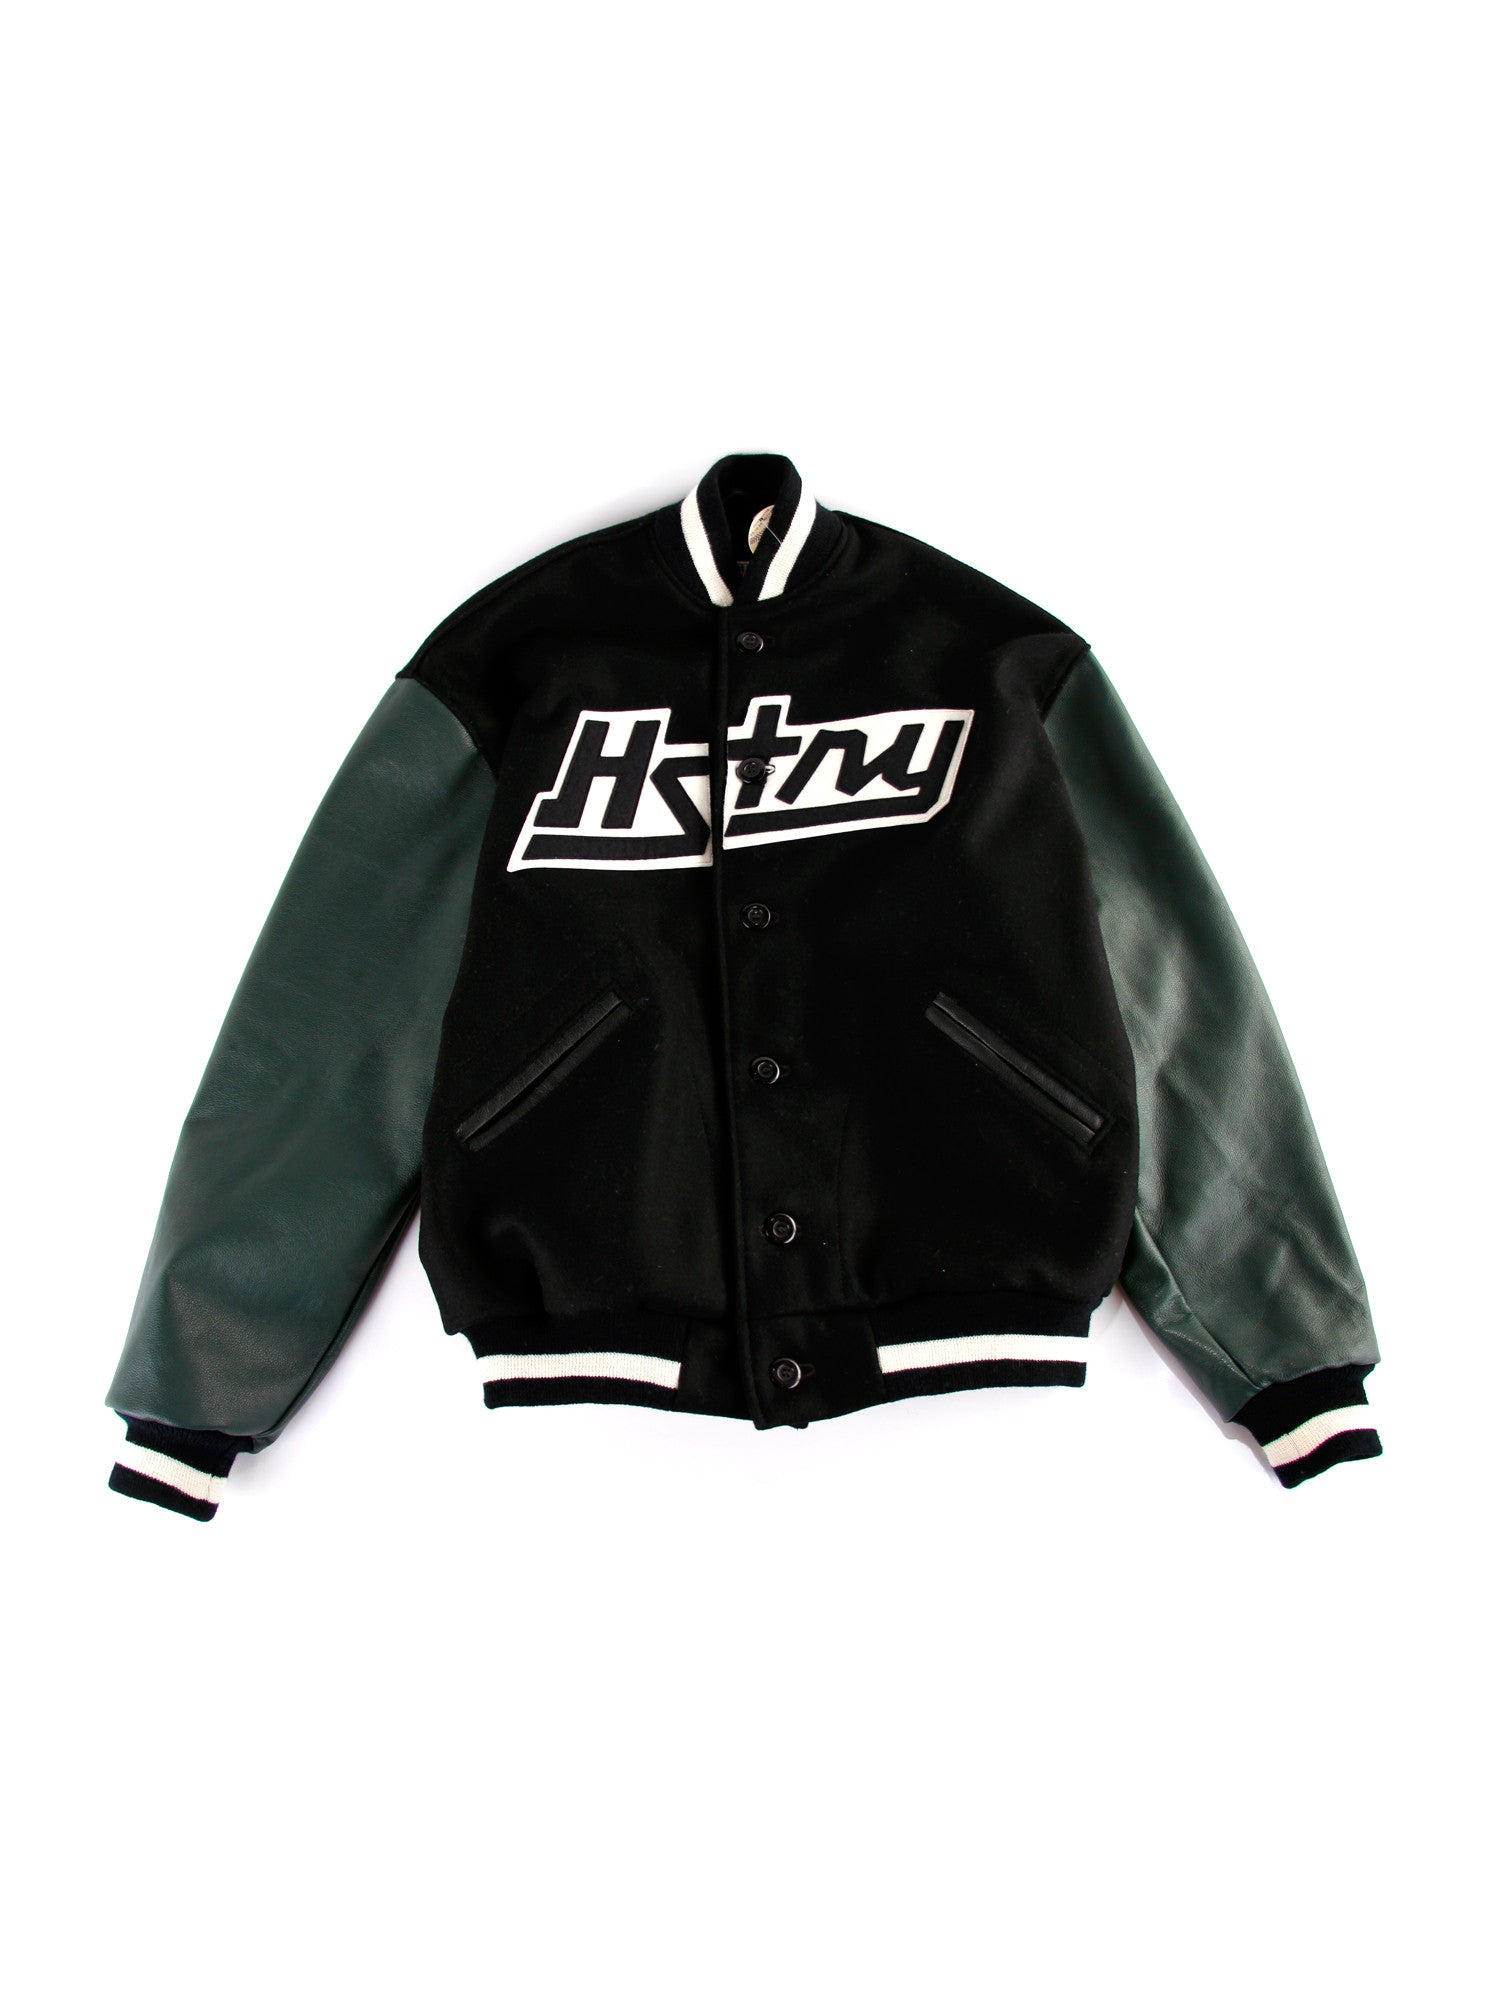 HSTRY x Ebbets Varsity Jacket